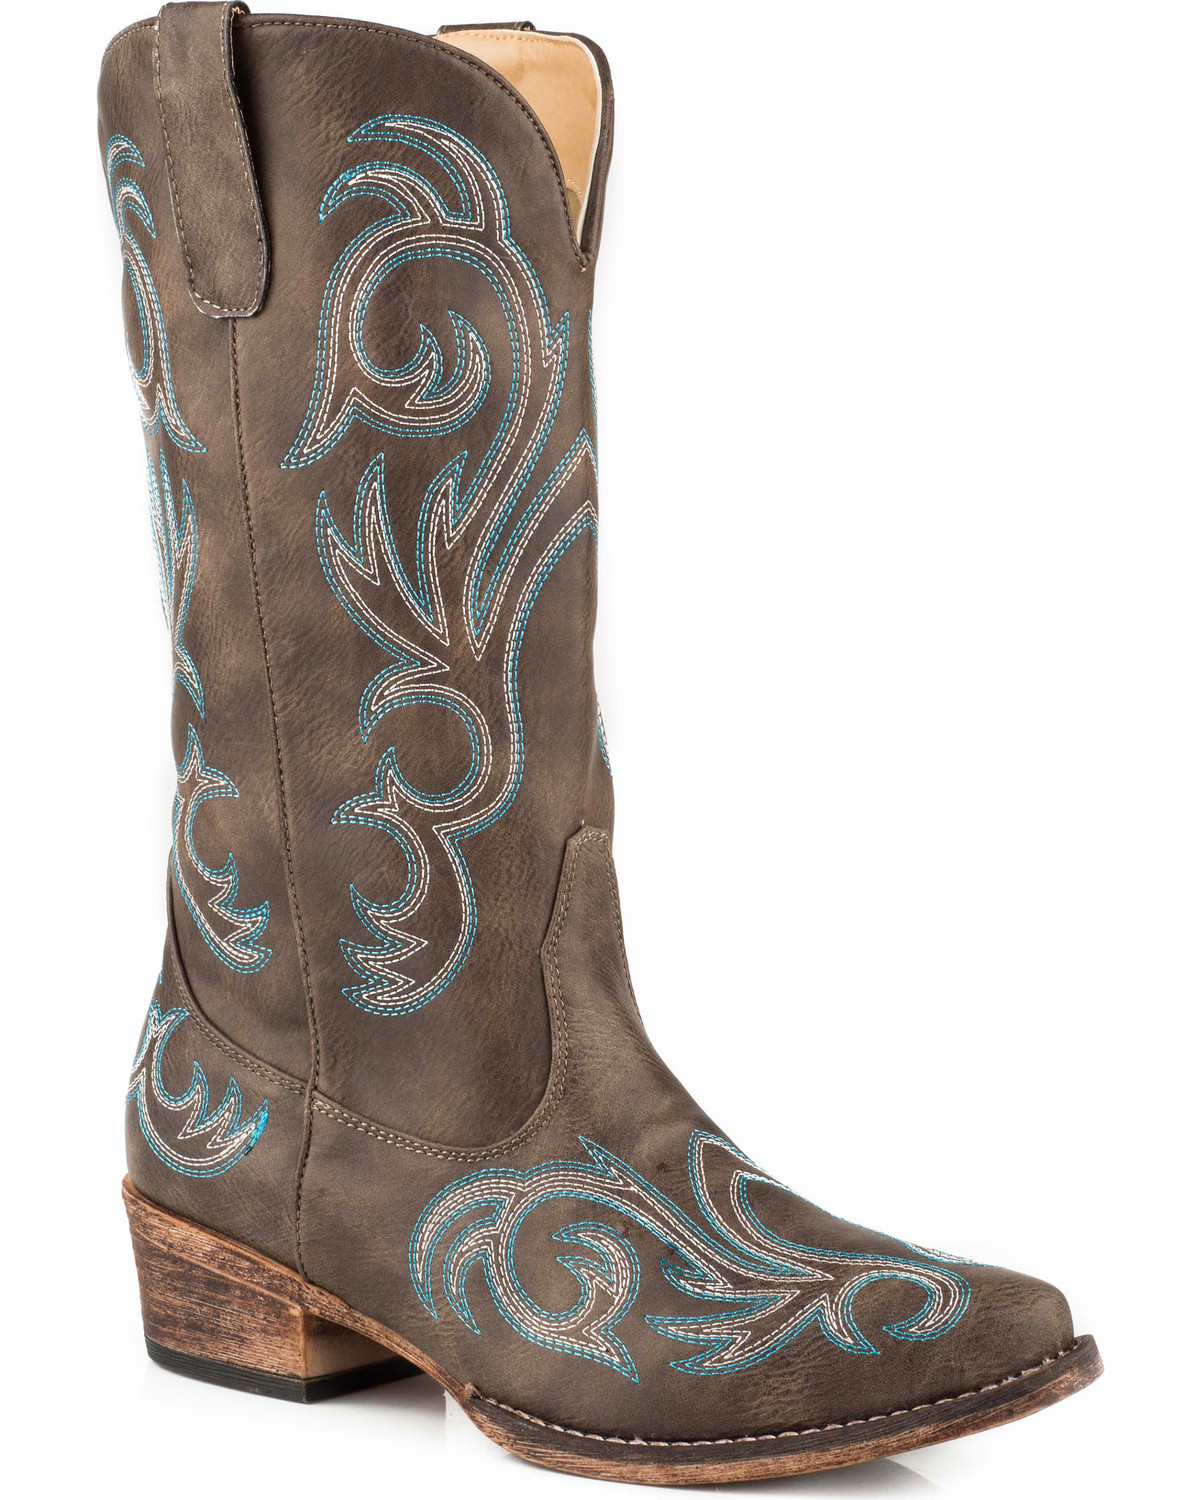 4a60322d80d3 Roper Womens Brown Riley Vintage Western Boots - Snip Toe